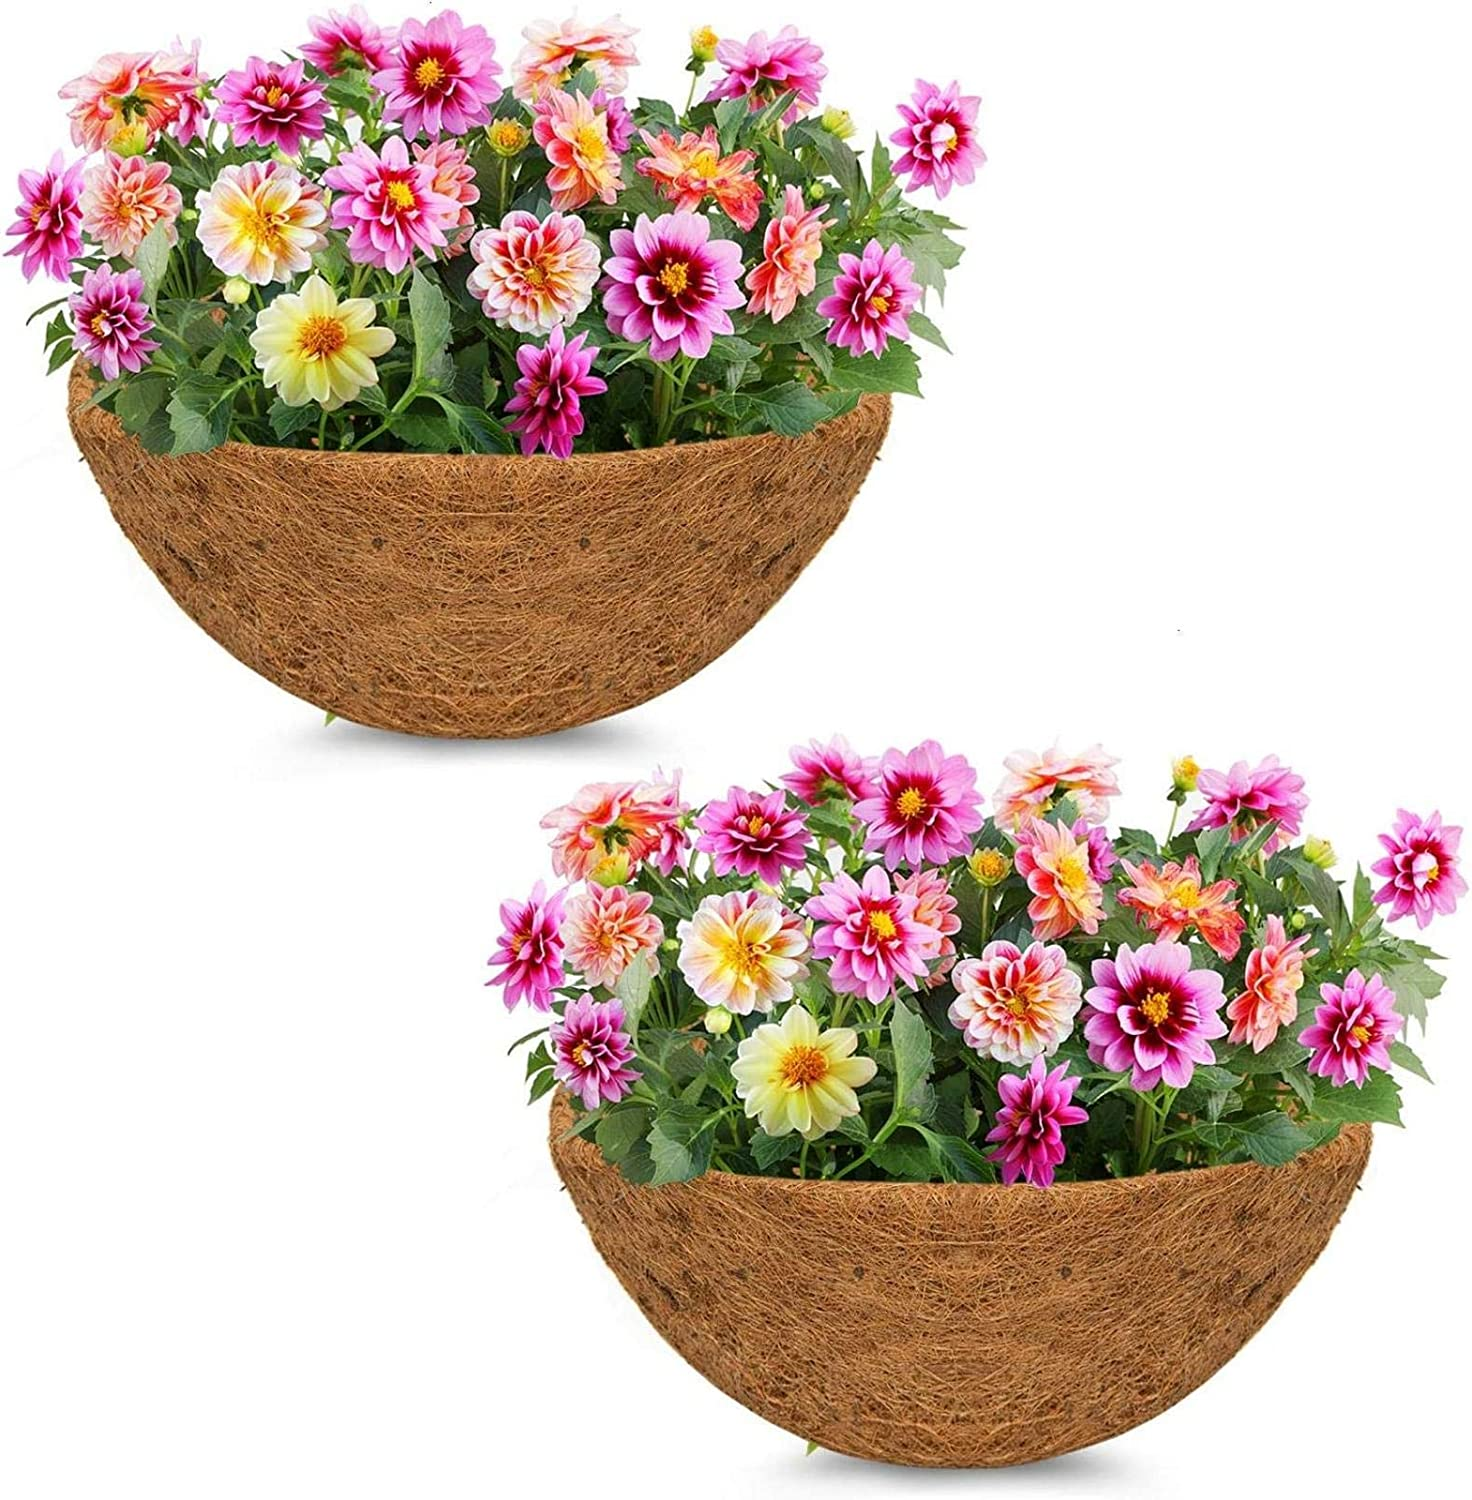 24 Inches Coco Coir Liner, 2PCS Replacement Coco Liner for Hanging Basket, for Hanging Basket Coconut Fiber Planter Inserts Garden Flower Pot(Round)